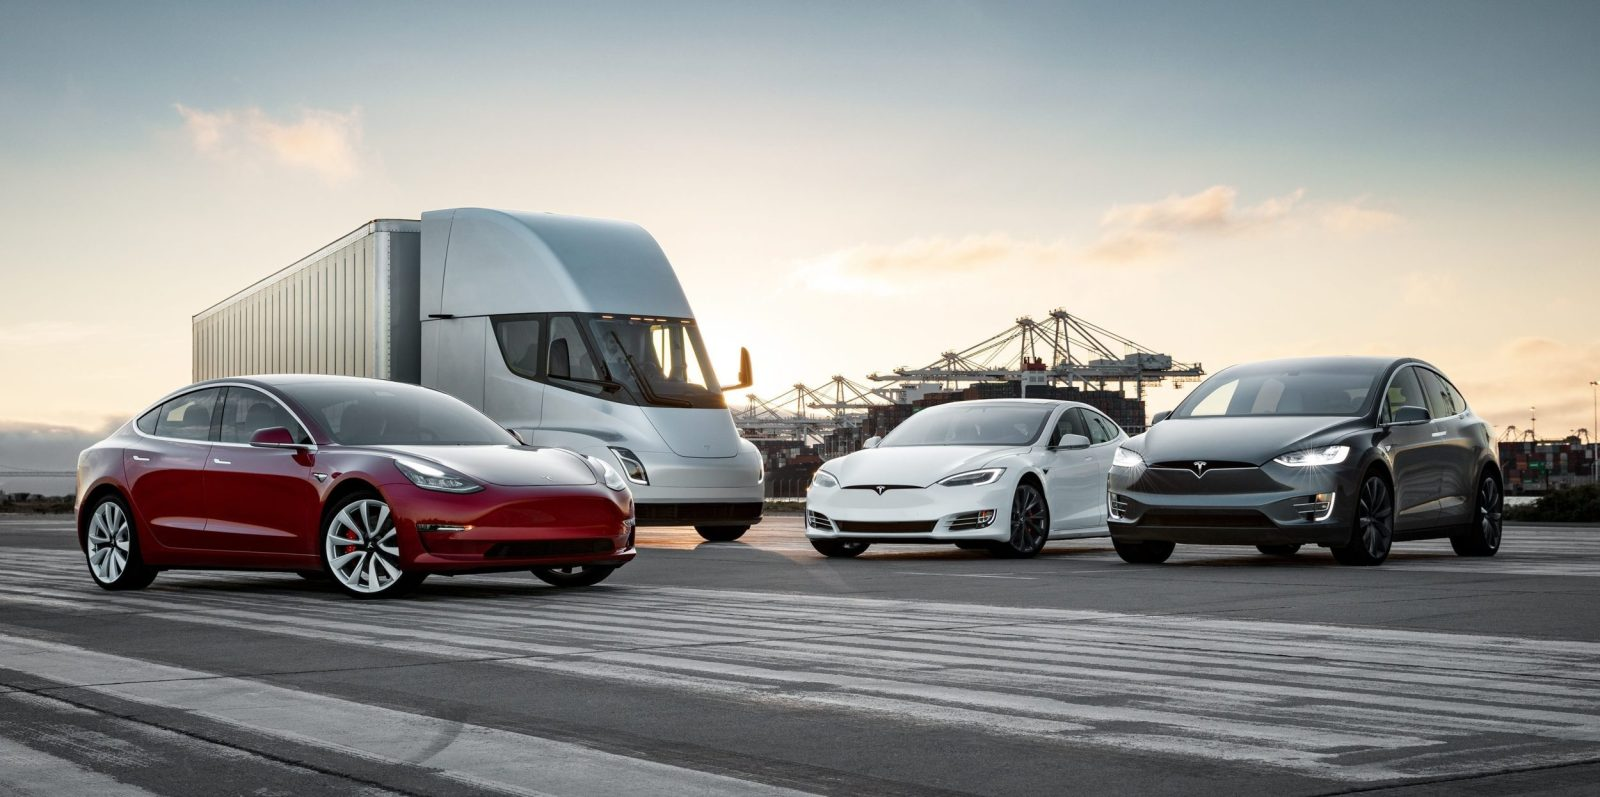 Tesla explains the differences in its growing S3XY ...